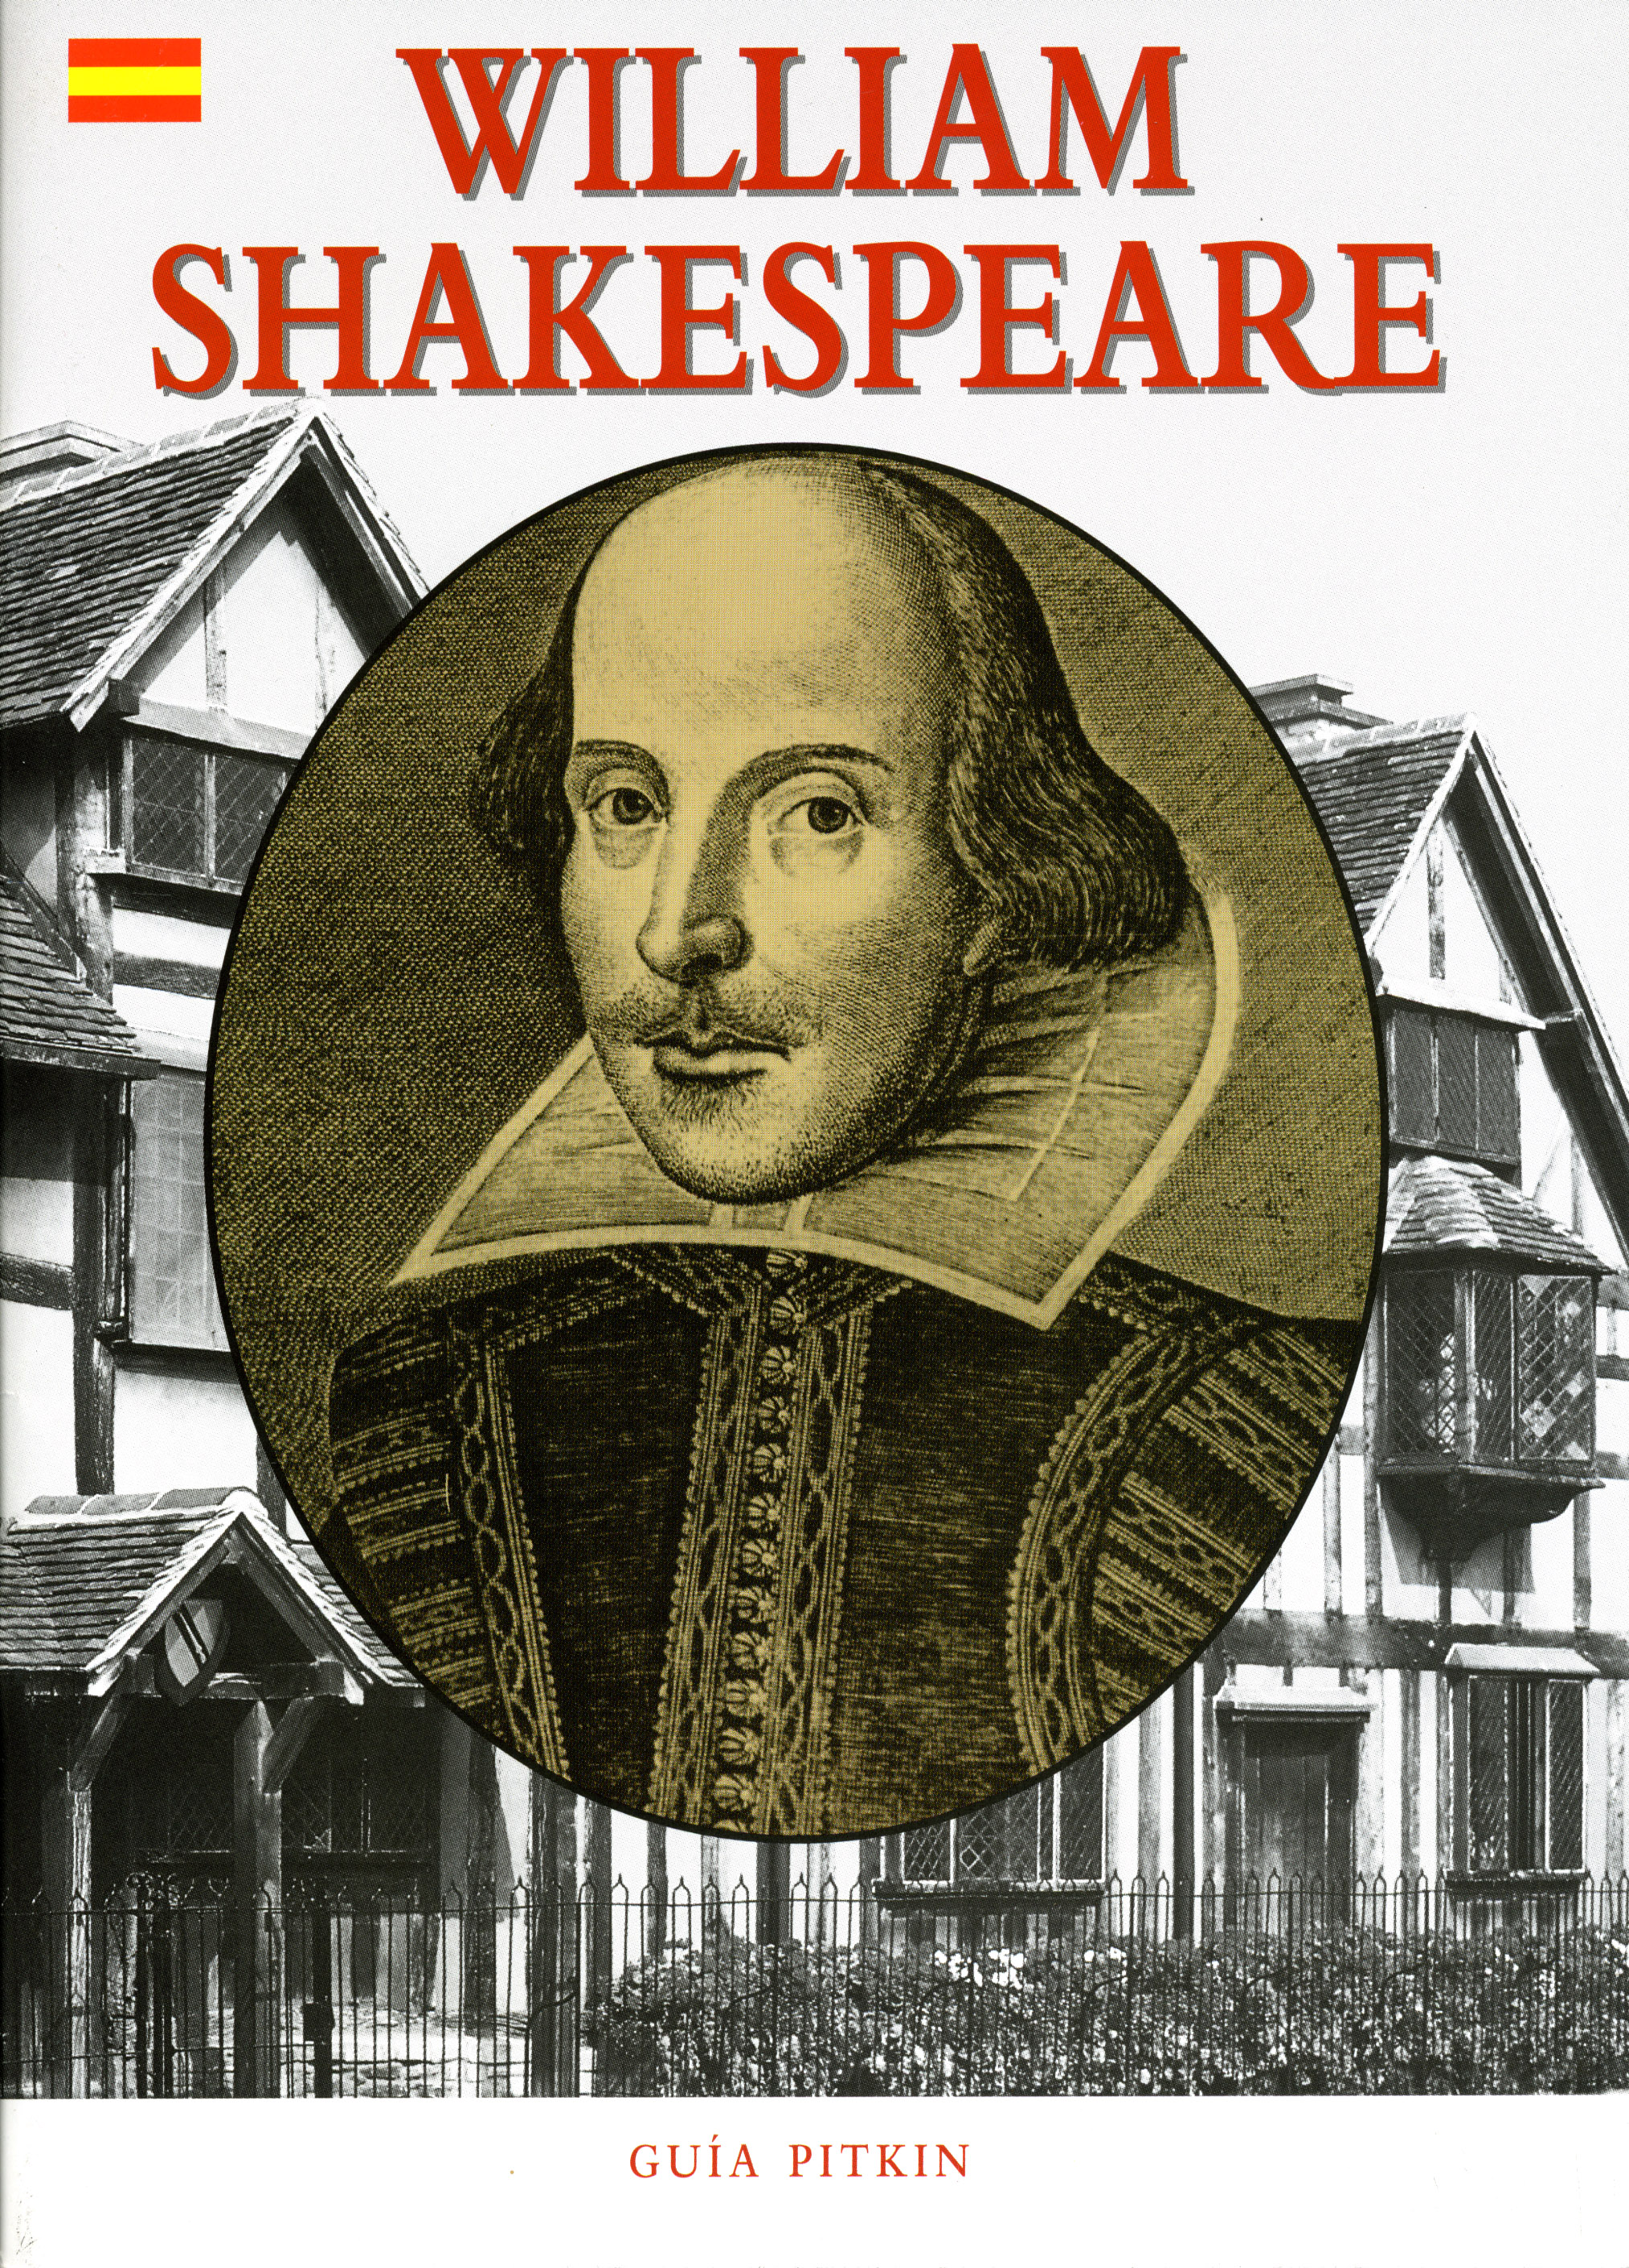 William Shakespeare – Spanish